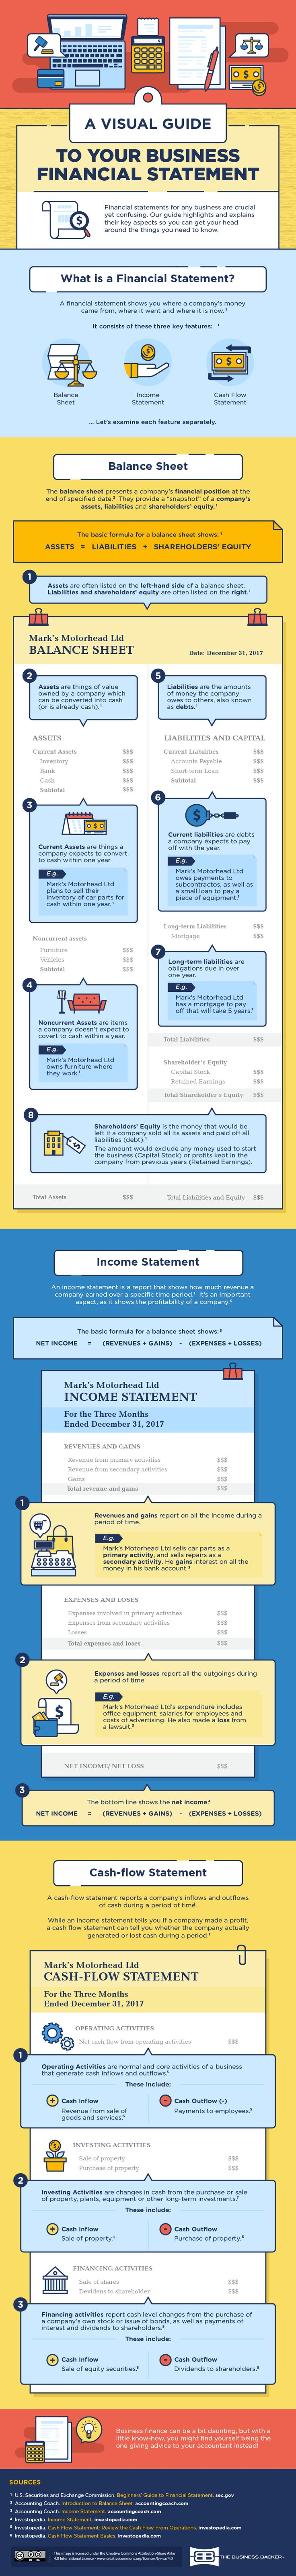 A Visual Guide To Your Business Financial Statement [INFOGRAPHIC]